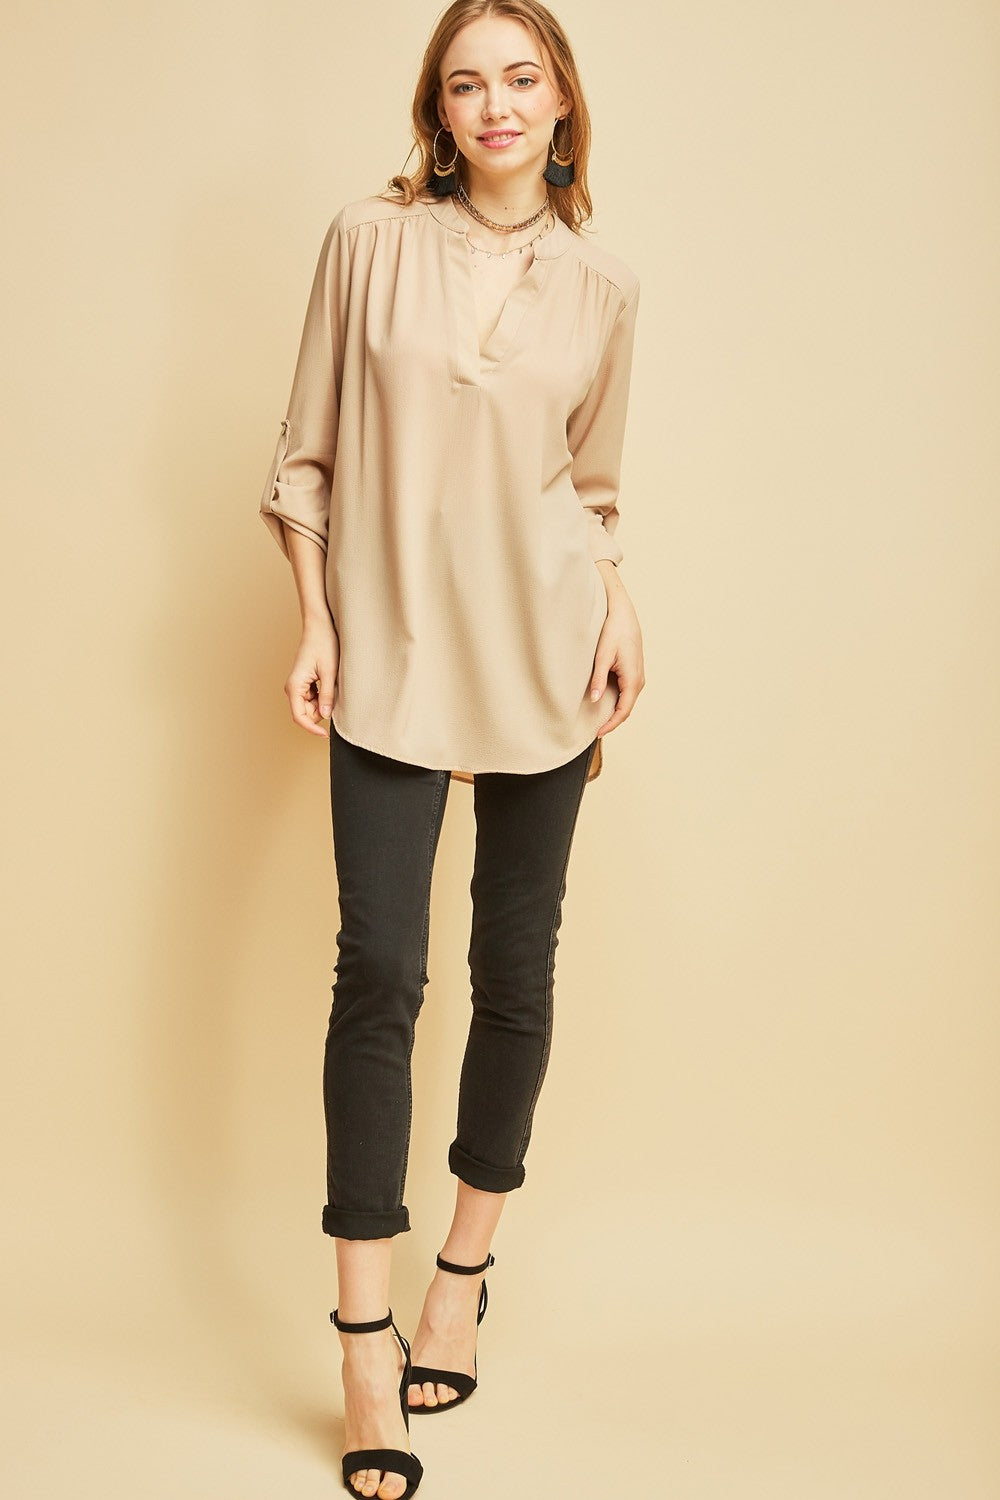 The Madison Top in Taupe